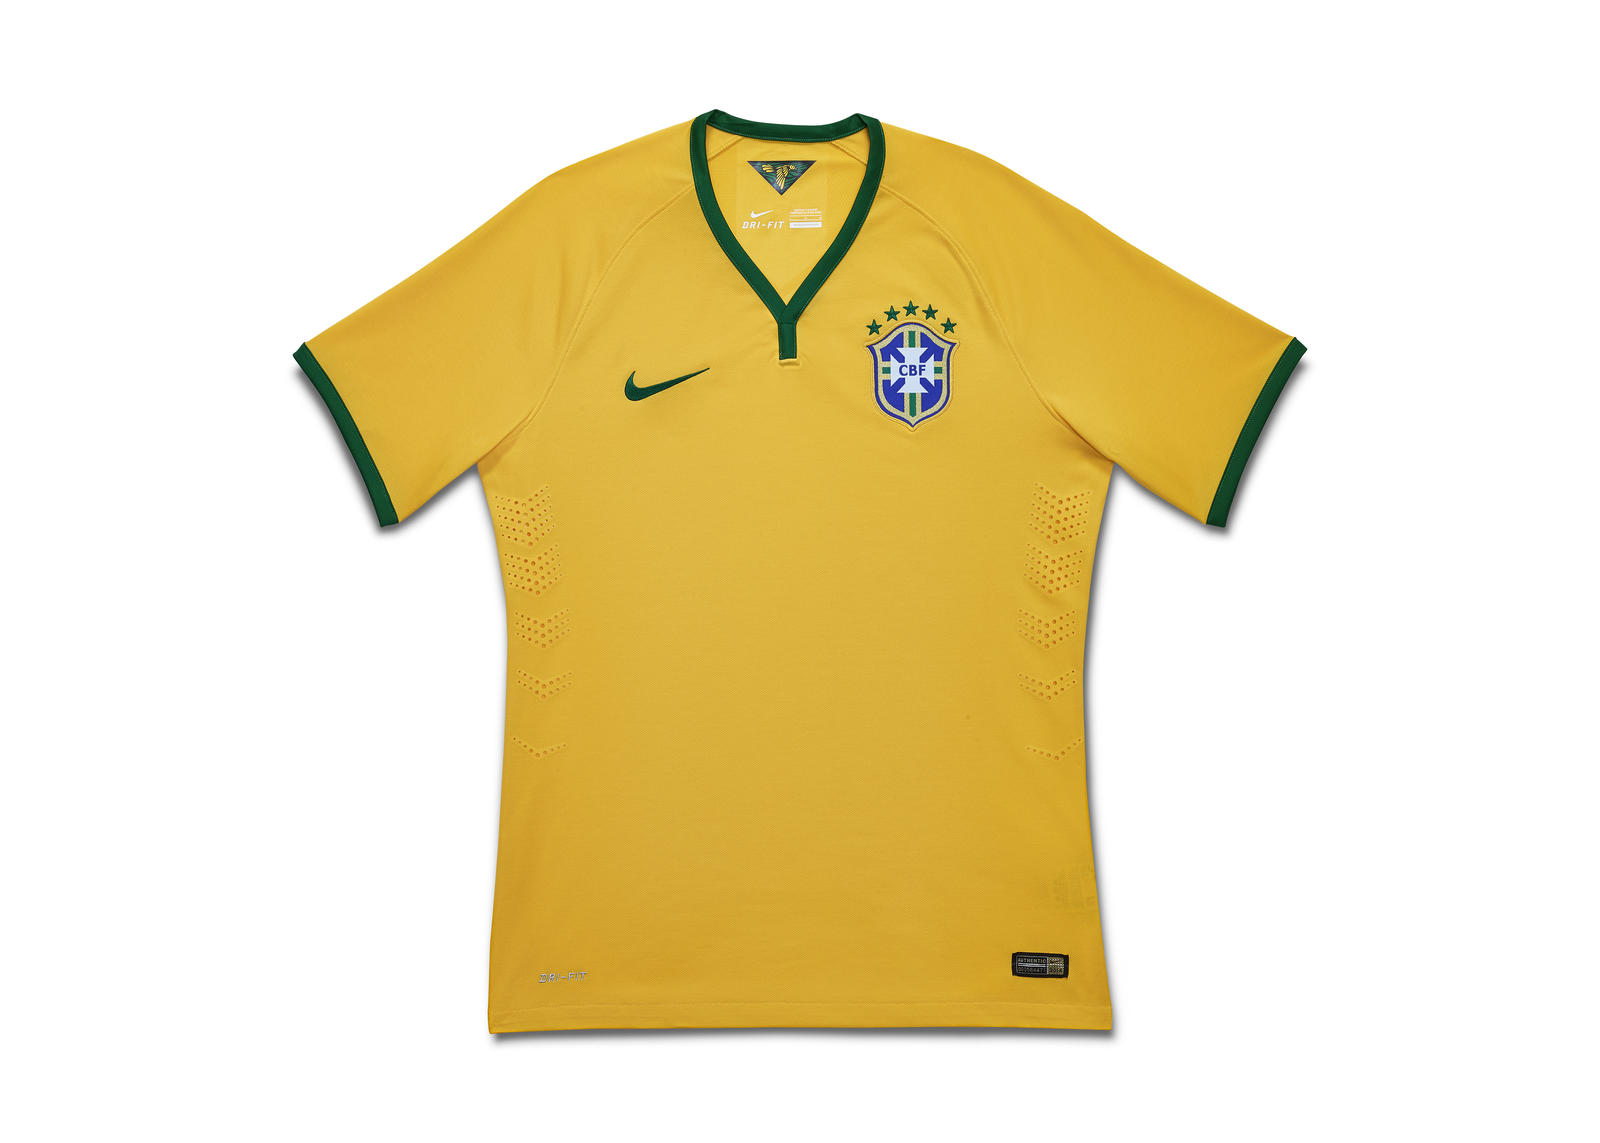 A Retrospective of Brasil's Yellow Jersey 5